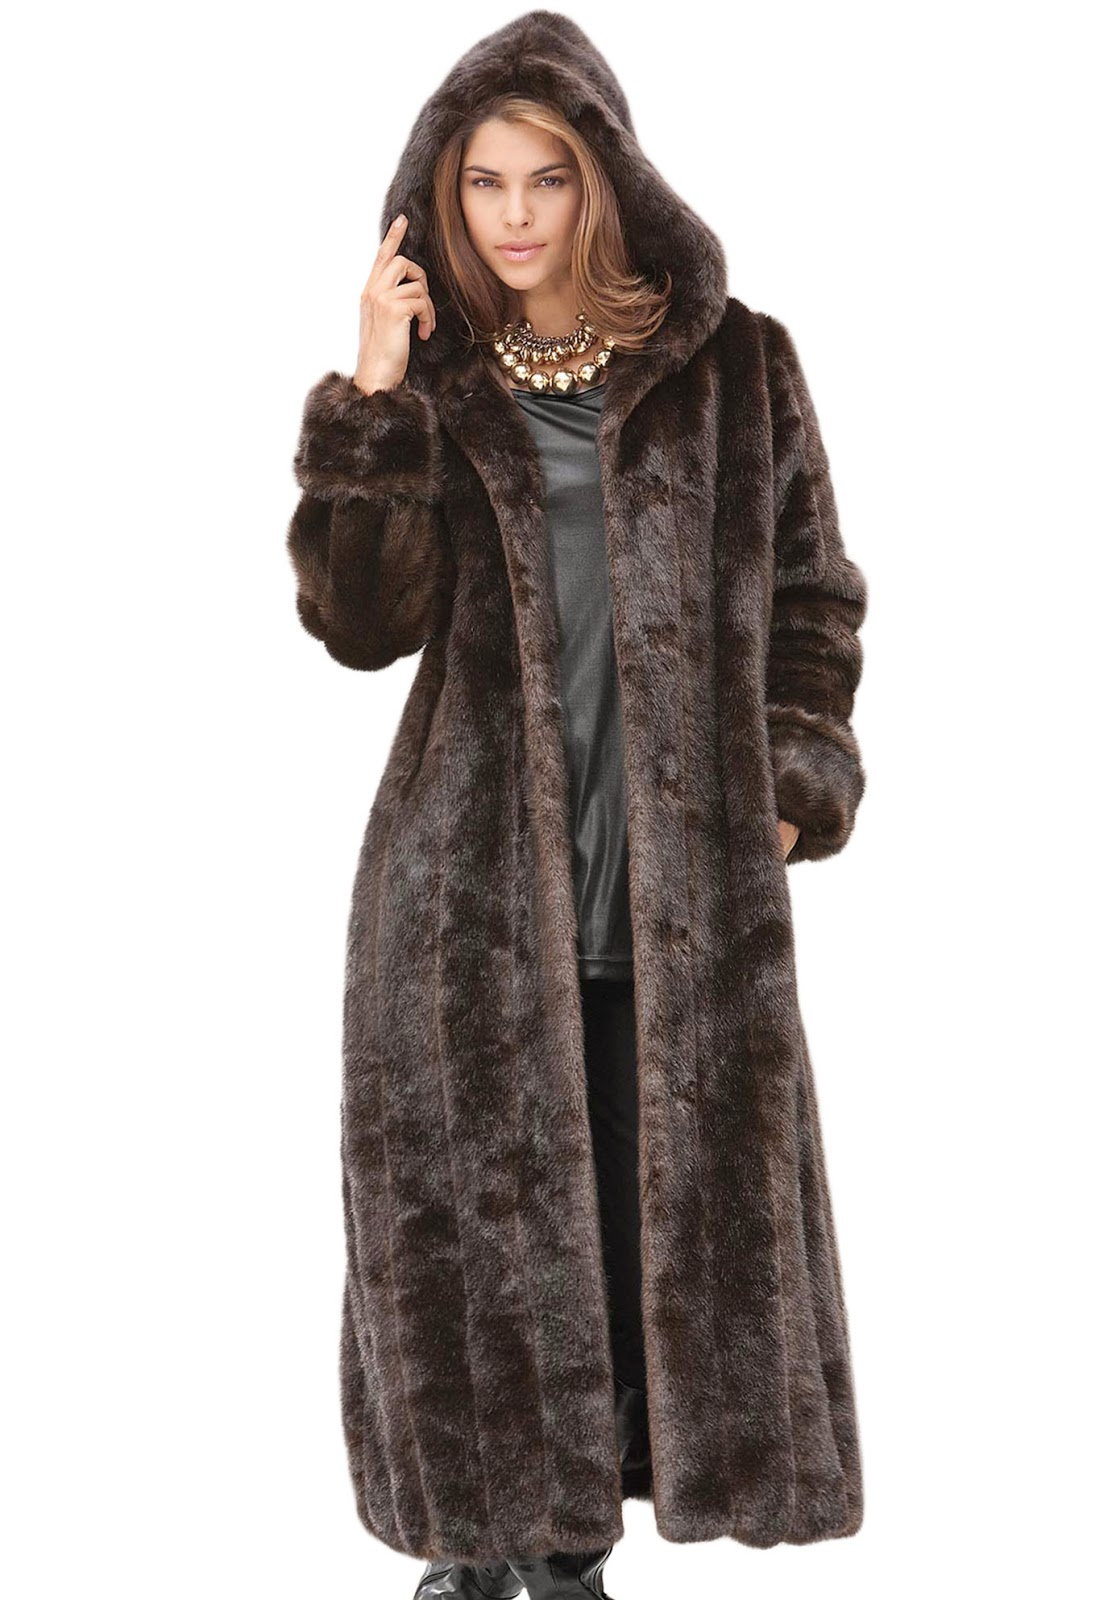 Coats: Free Shipping on orders over $45 at Stay warm with our great selection of Women's coats from hereaupy06.gq Your Online Women's Outerwear Store! Get 5% in rewards with Club O!